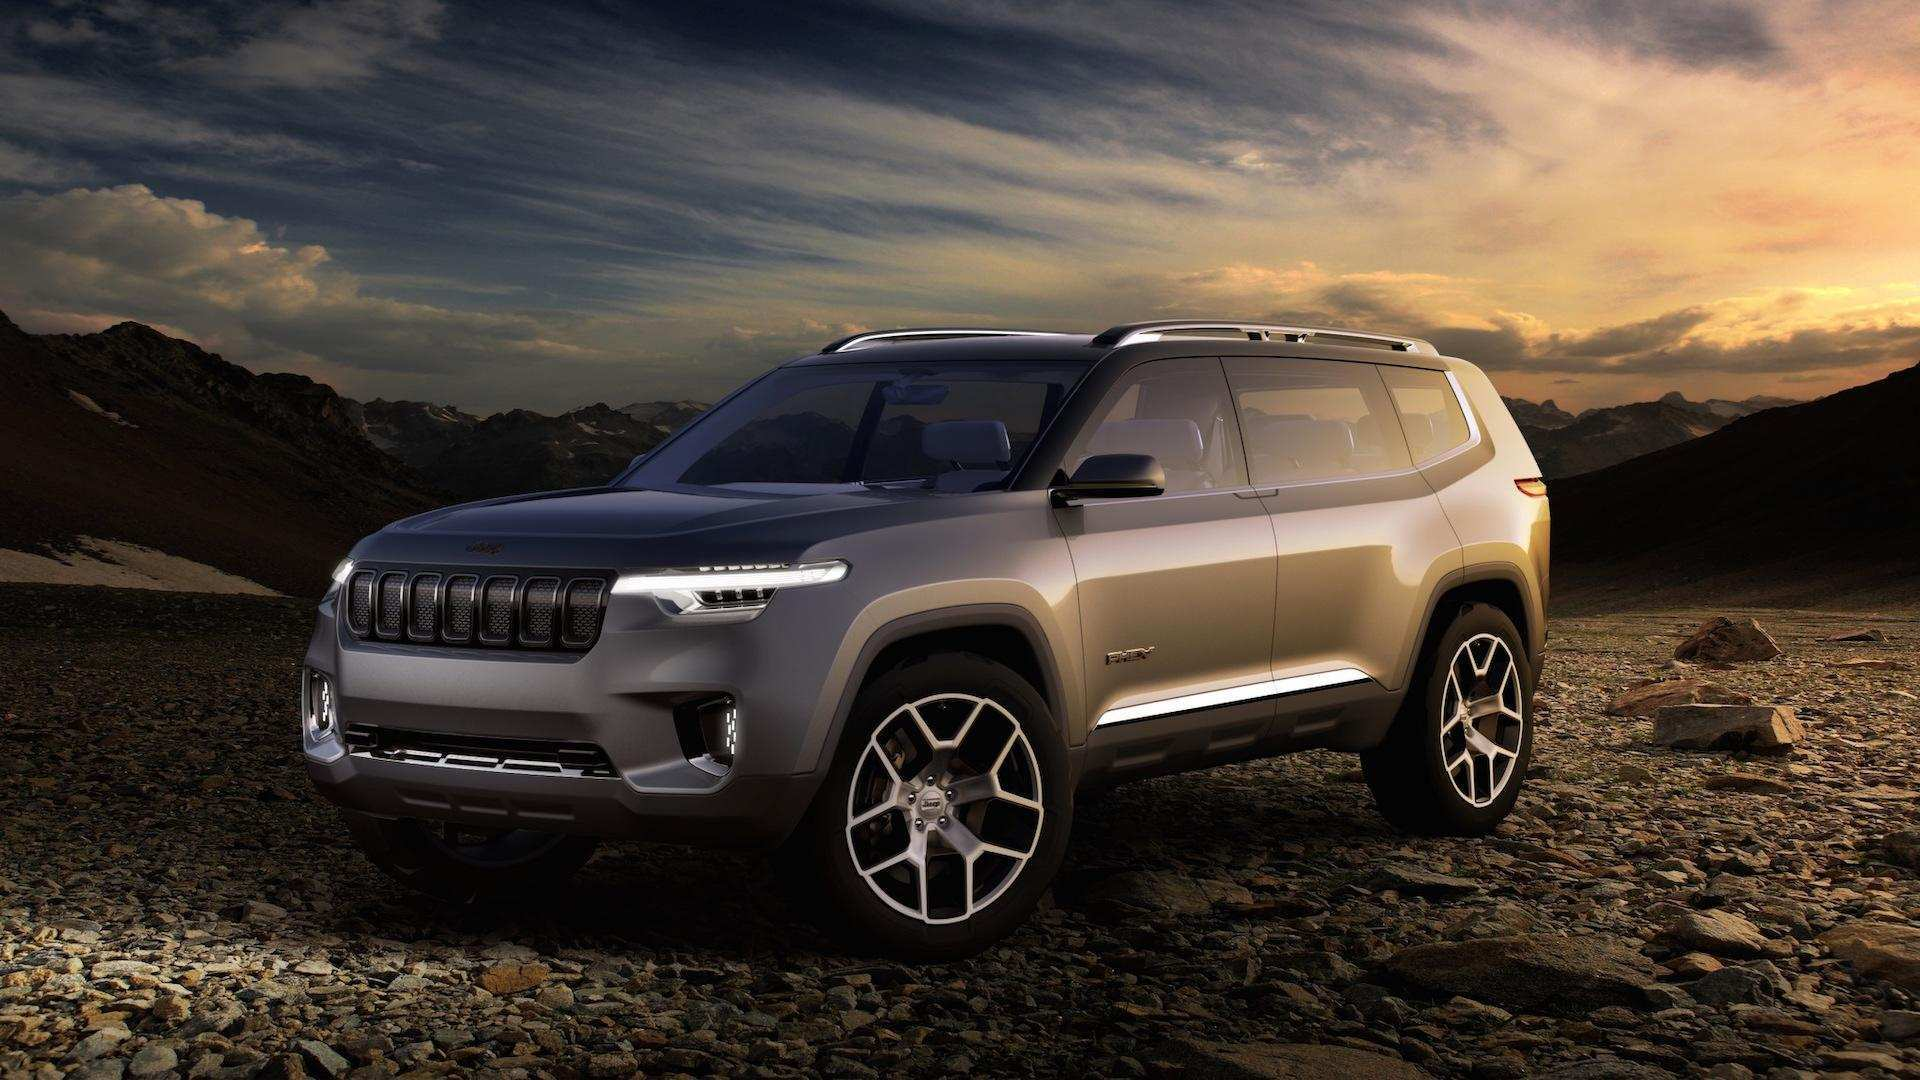 41 The Best 2020 Jeep Grand Cherokee Spy Photos Release Date